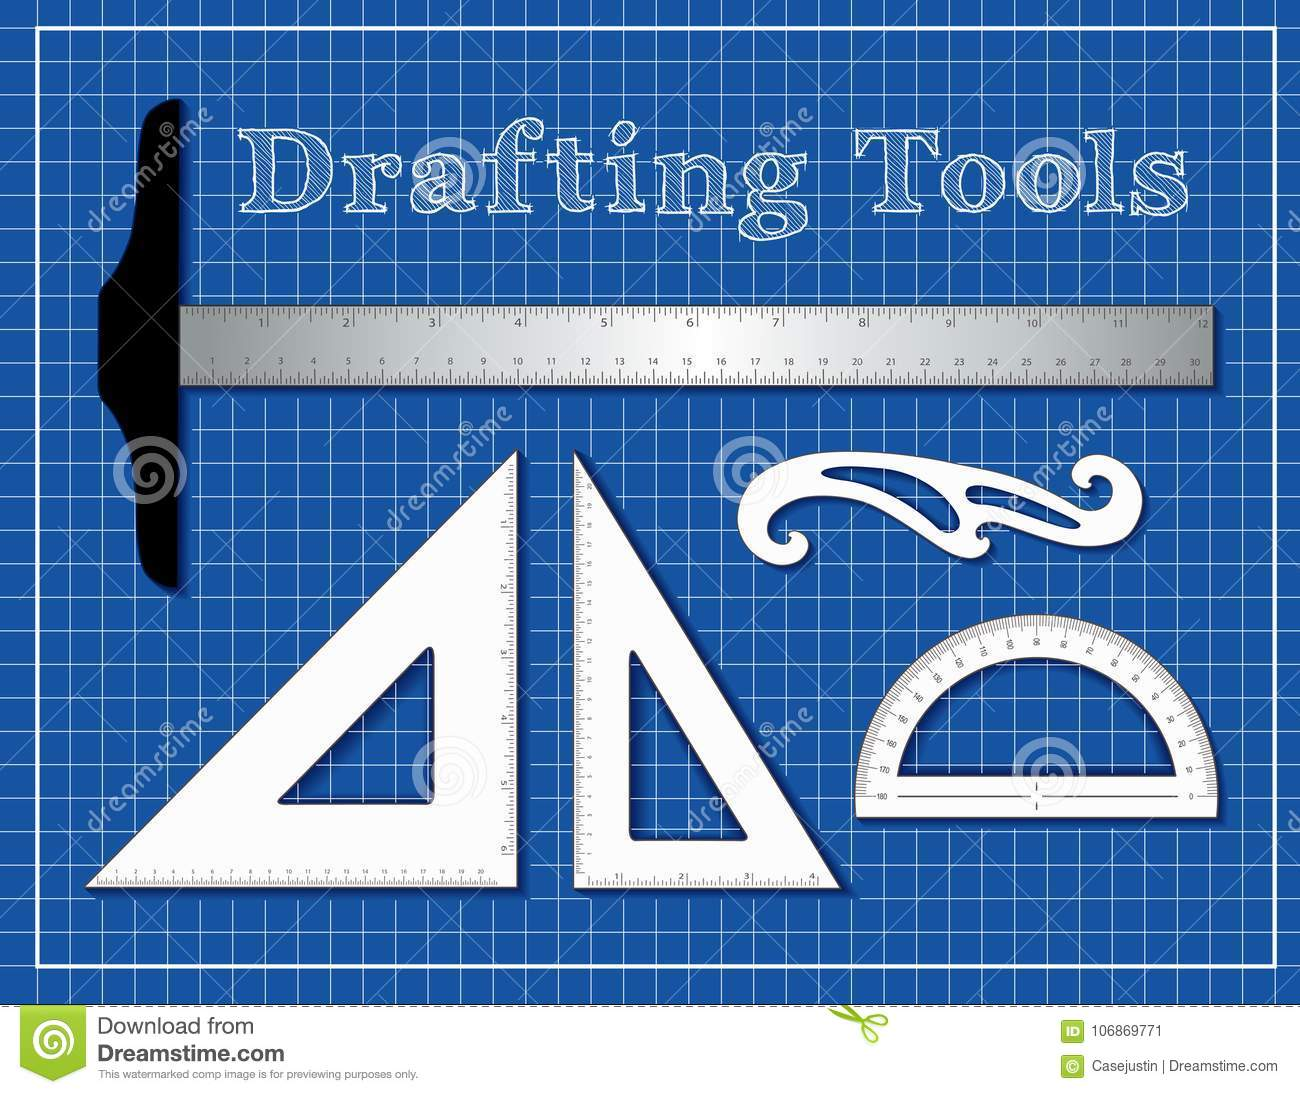 Drafting Tools For Architecture, Engineers, Science, Math, Stock ...